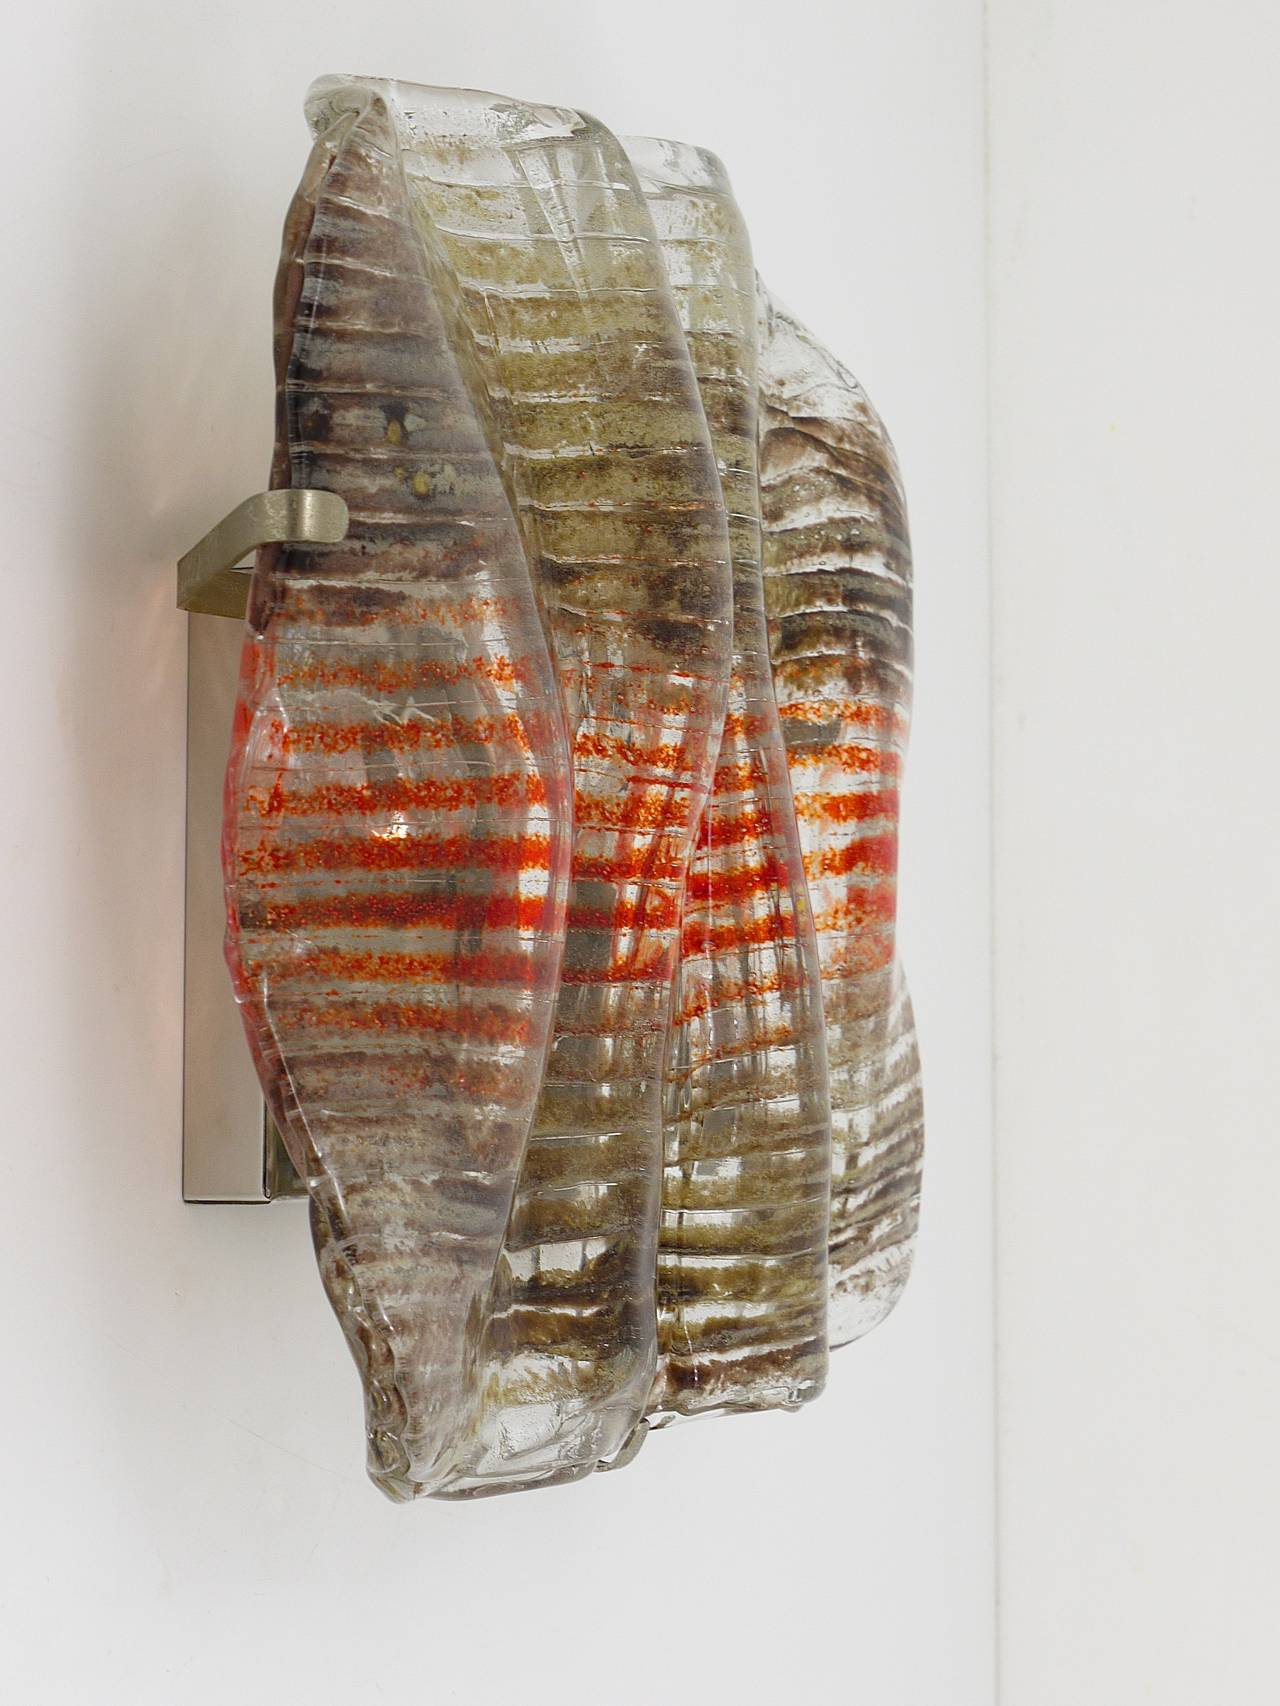 Wall Light Glass Panel : Huge Kalmar Sconce Wall Light with a Striped Murano Glass Panel, 1970s Austria For Sale at 1stdibs